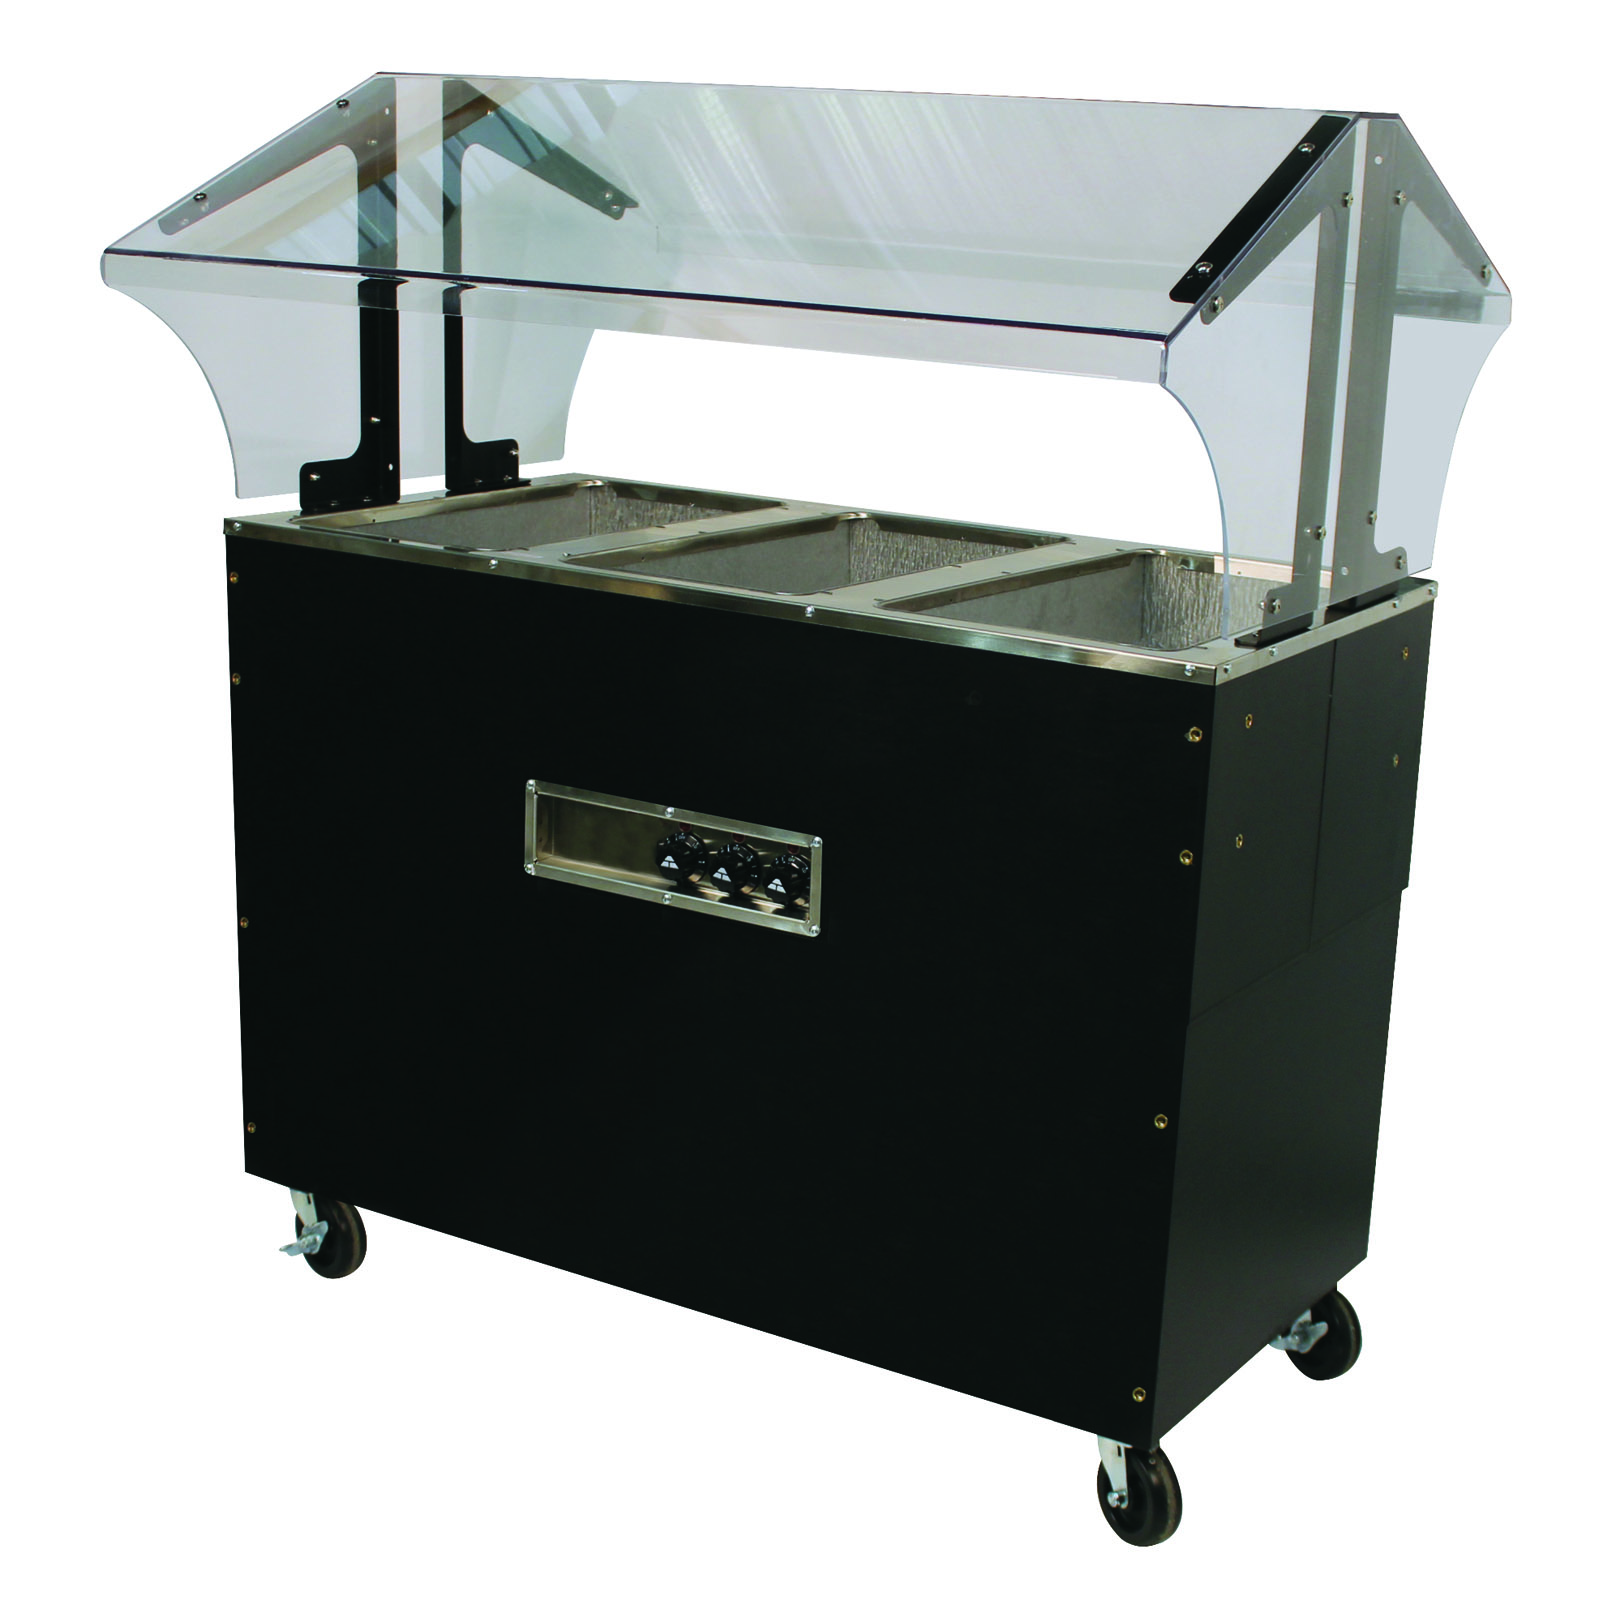 Advance Tabco B3-240-B-S-SB serving counter, hot food, electric